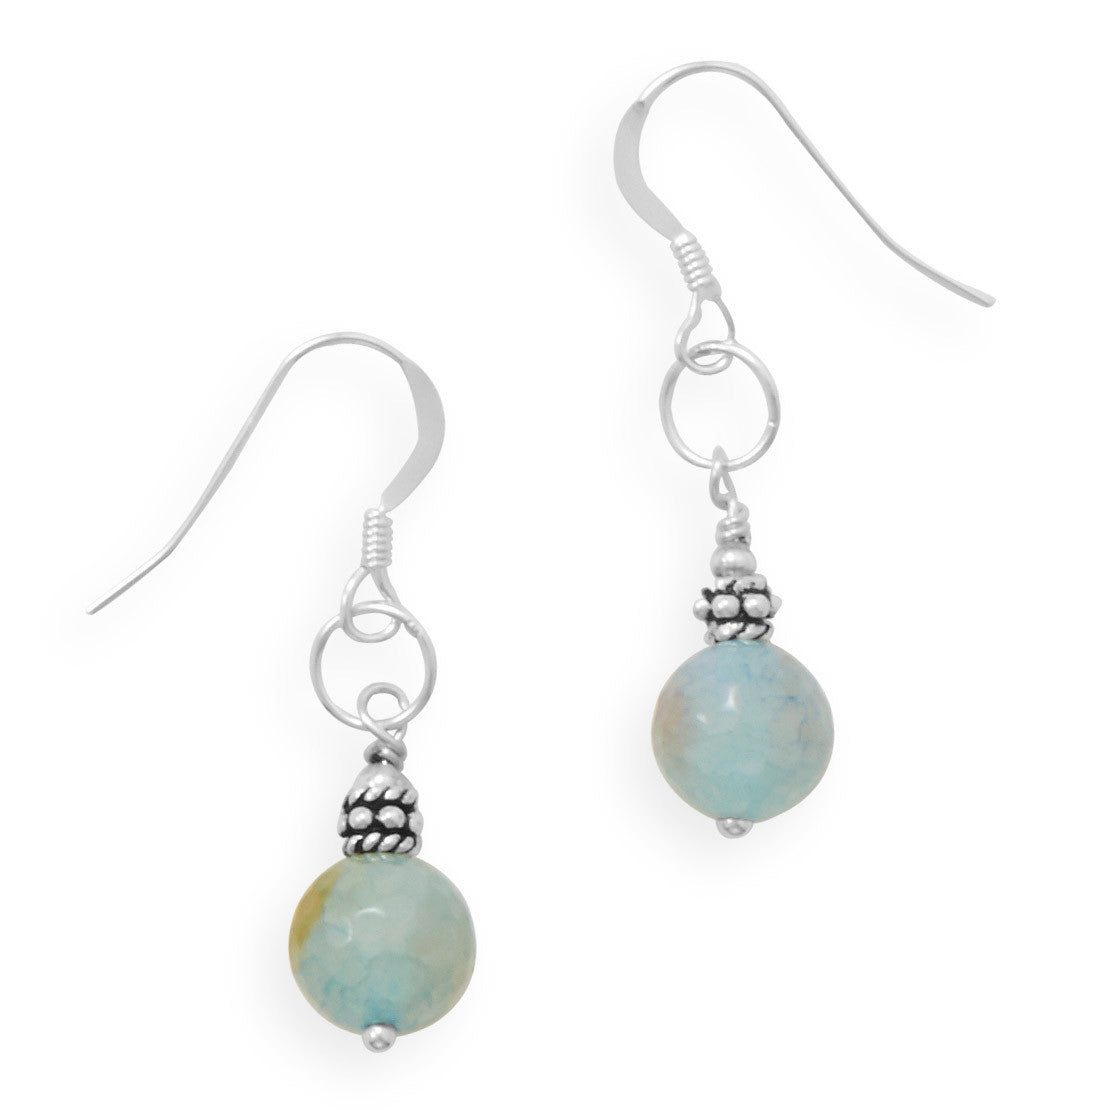 HANDMADE Faceted Fire Agate French Wire Earrings